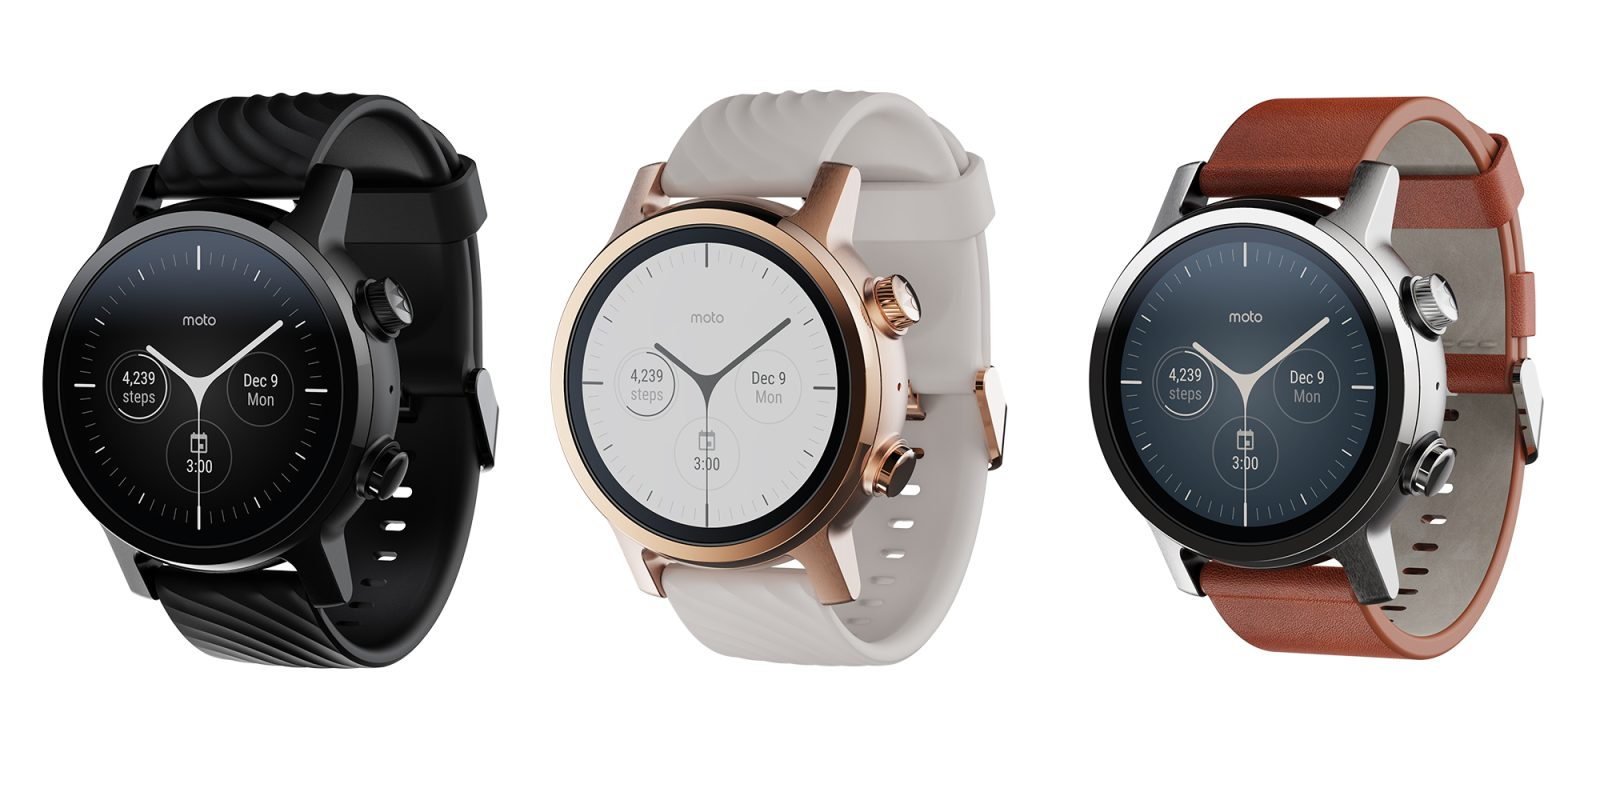 [Update: US pre-orders open] The Moto 360 is being re-released for 2019 w/ new internals, familiar design